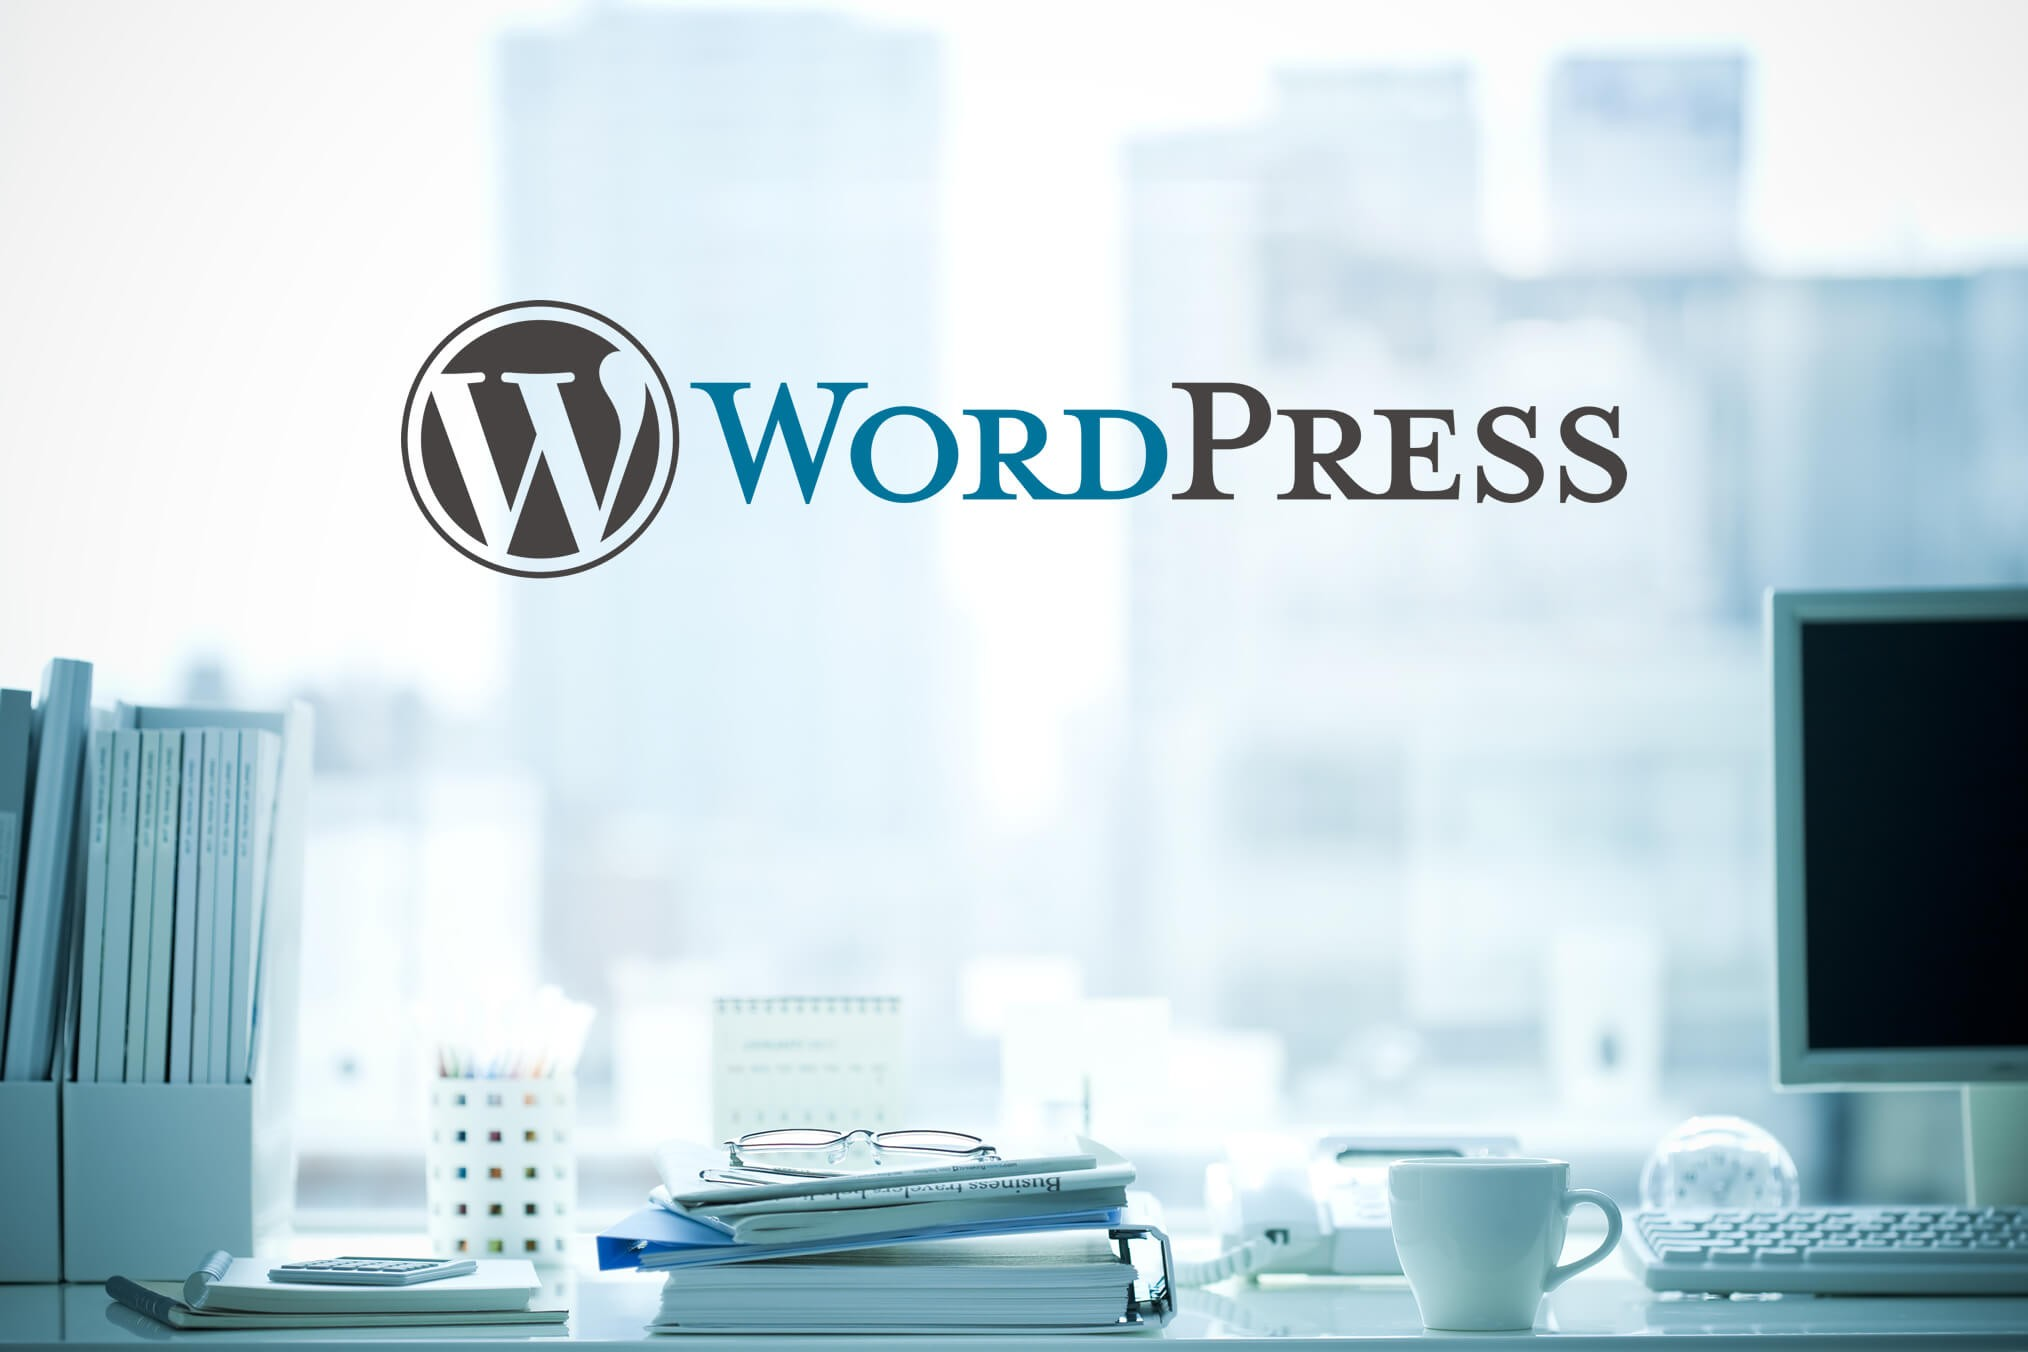 secrets about wordpress you must know